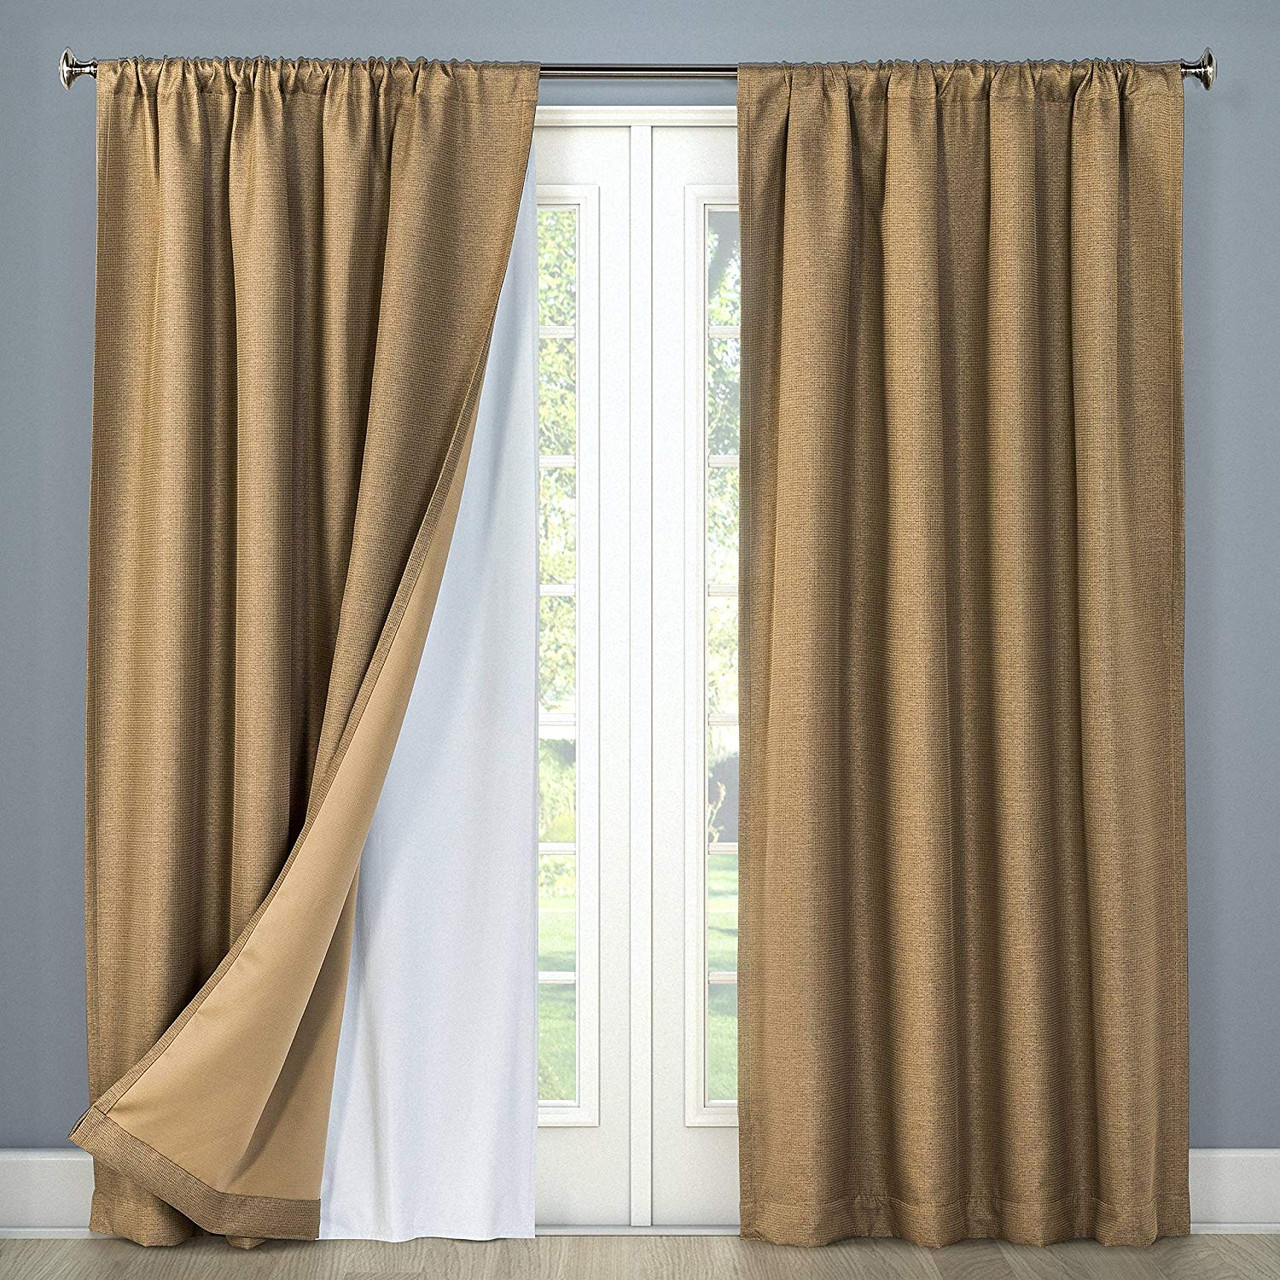 white thermal 100 blackout rod pocket curtain liner